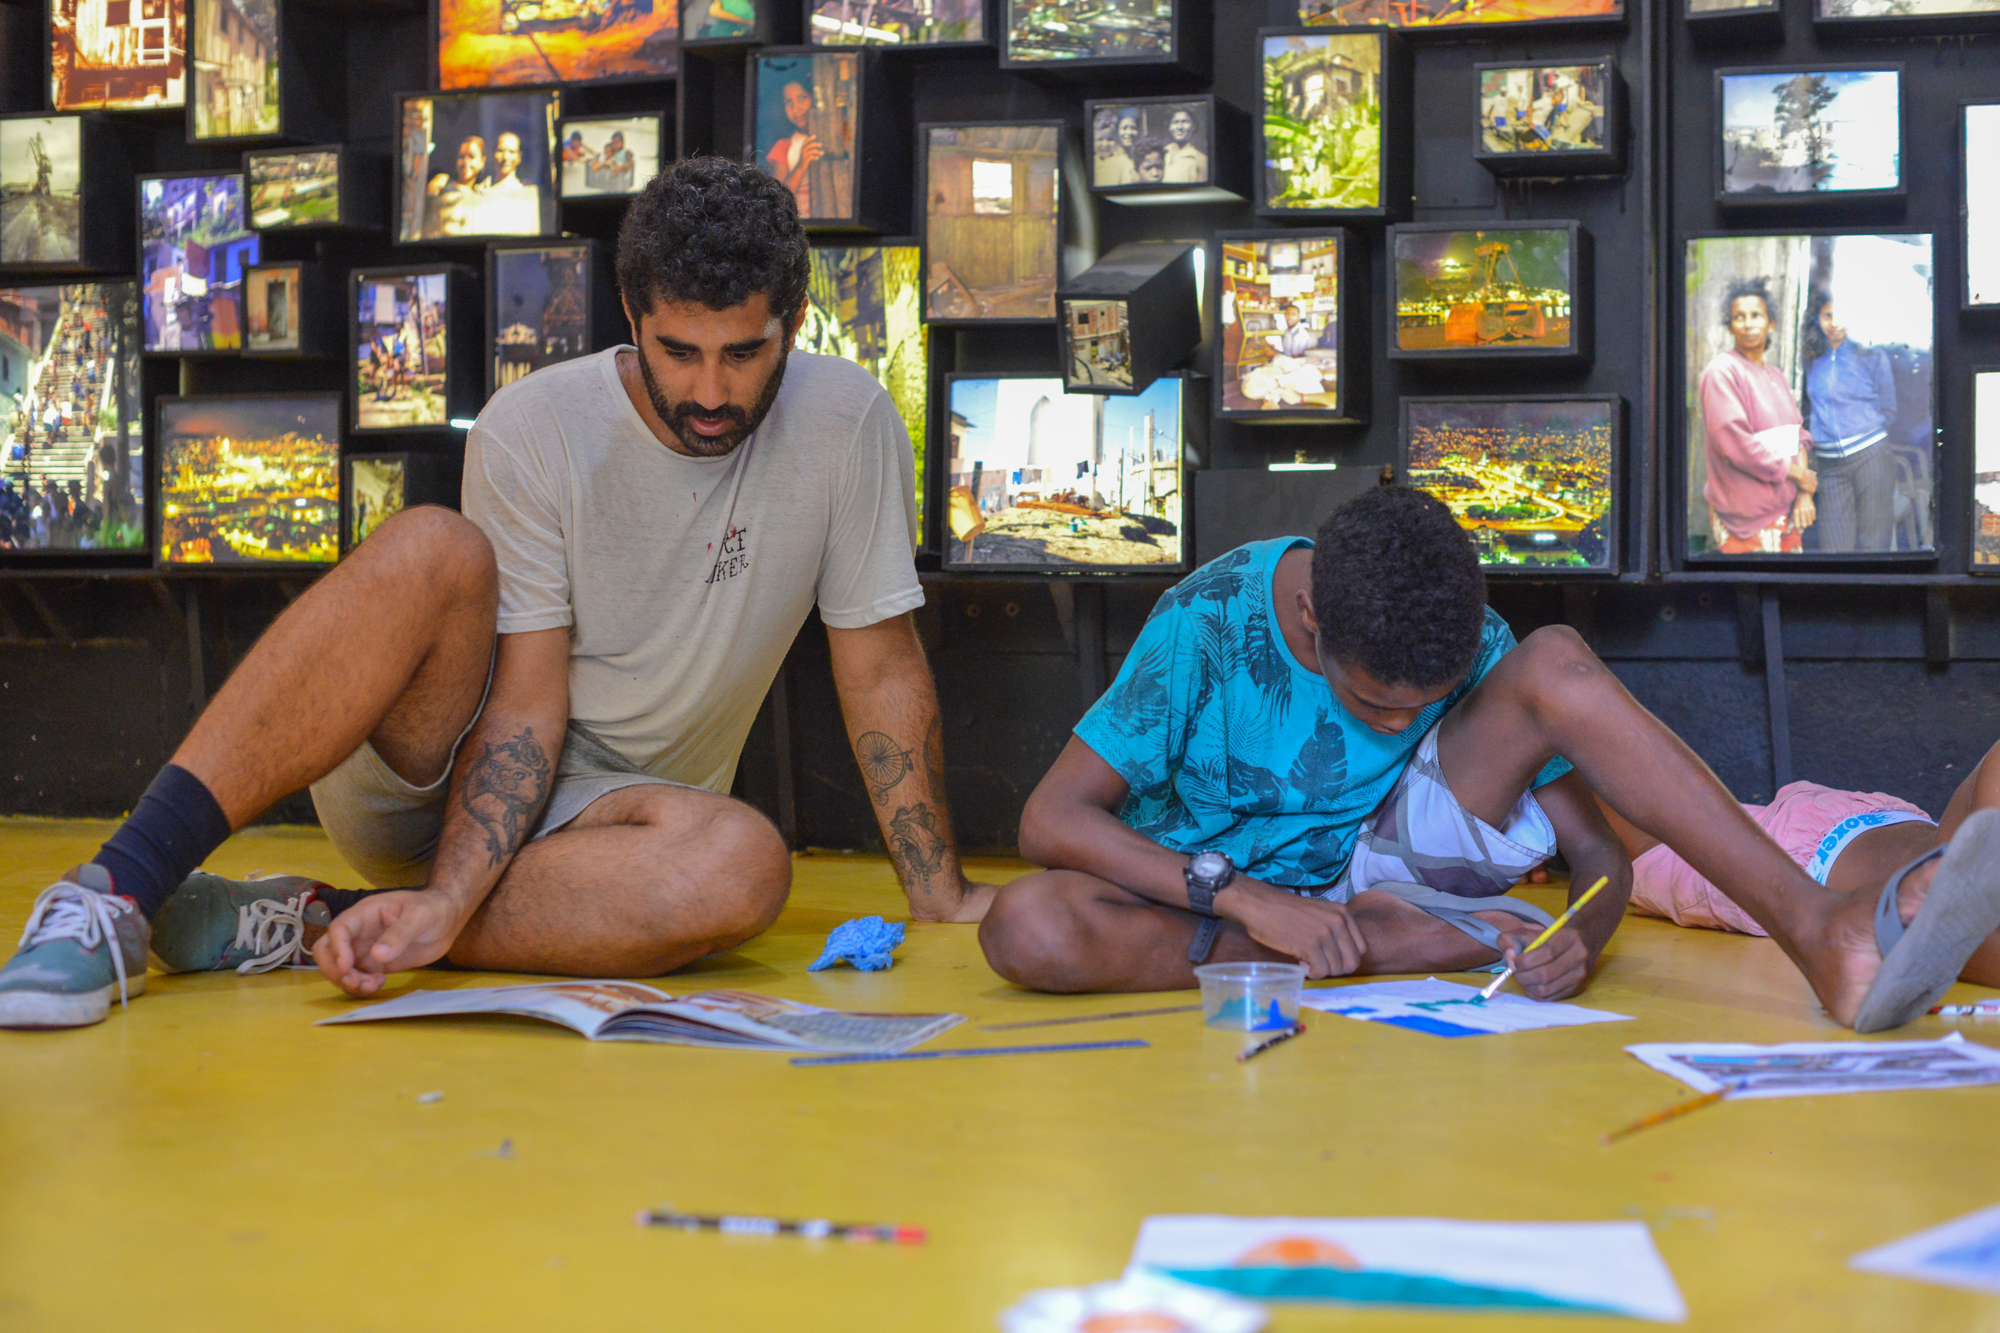 Cazé - Art and Illustration   Fernando Sawaya (Cazé) is a multimedia artist with a strong representation in the urban, scenery of Rio de Janeiro. He has been using the street as his support for 15 years. Formed in design and inclined in art, he gives classes e creates project with socio-cultural centers.